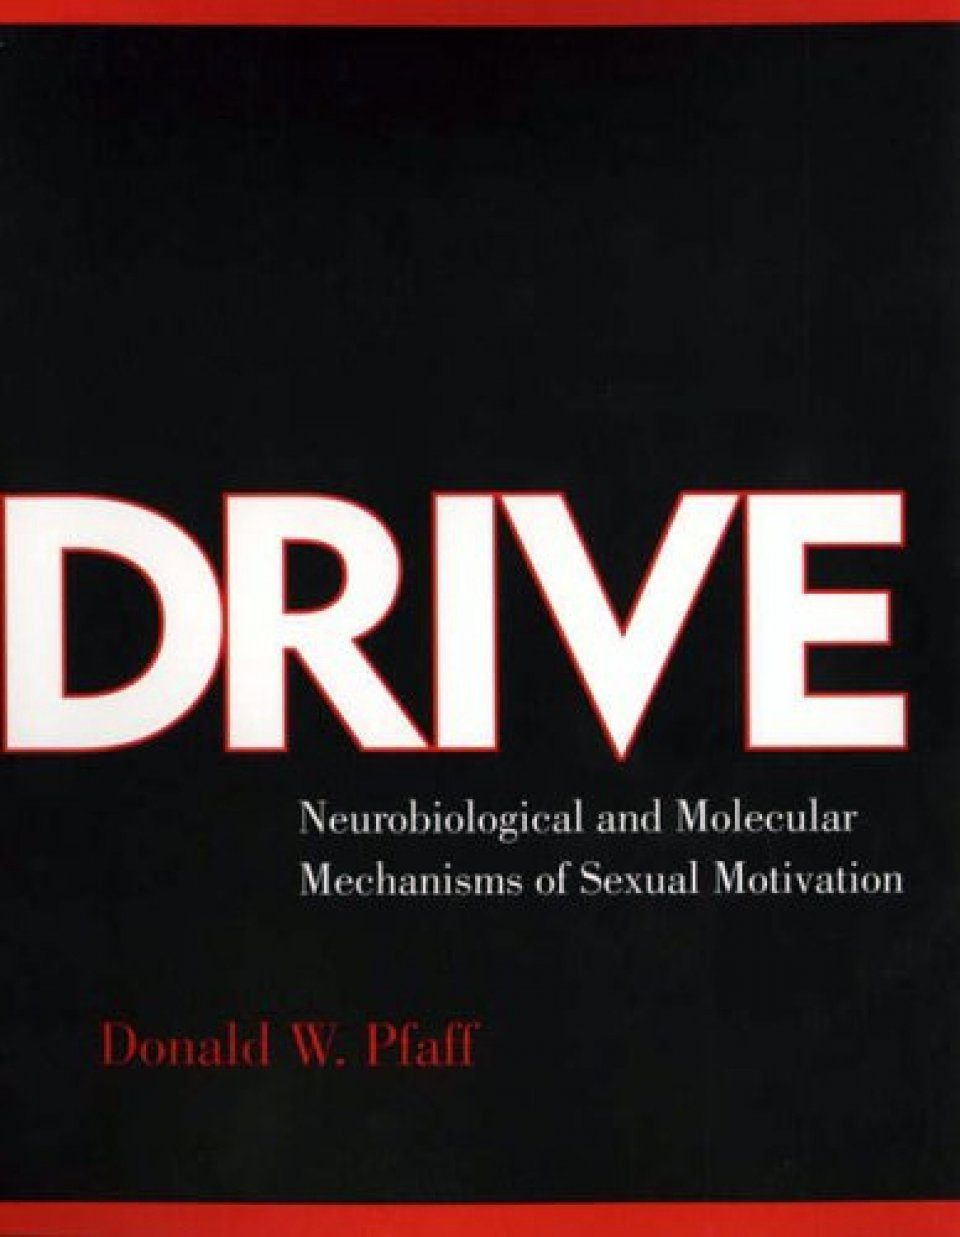 Drive: Neurobiological and Molecular Mechanisms of Sexual Motivation